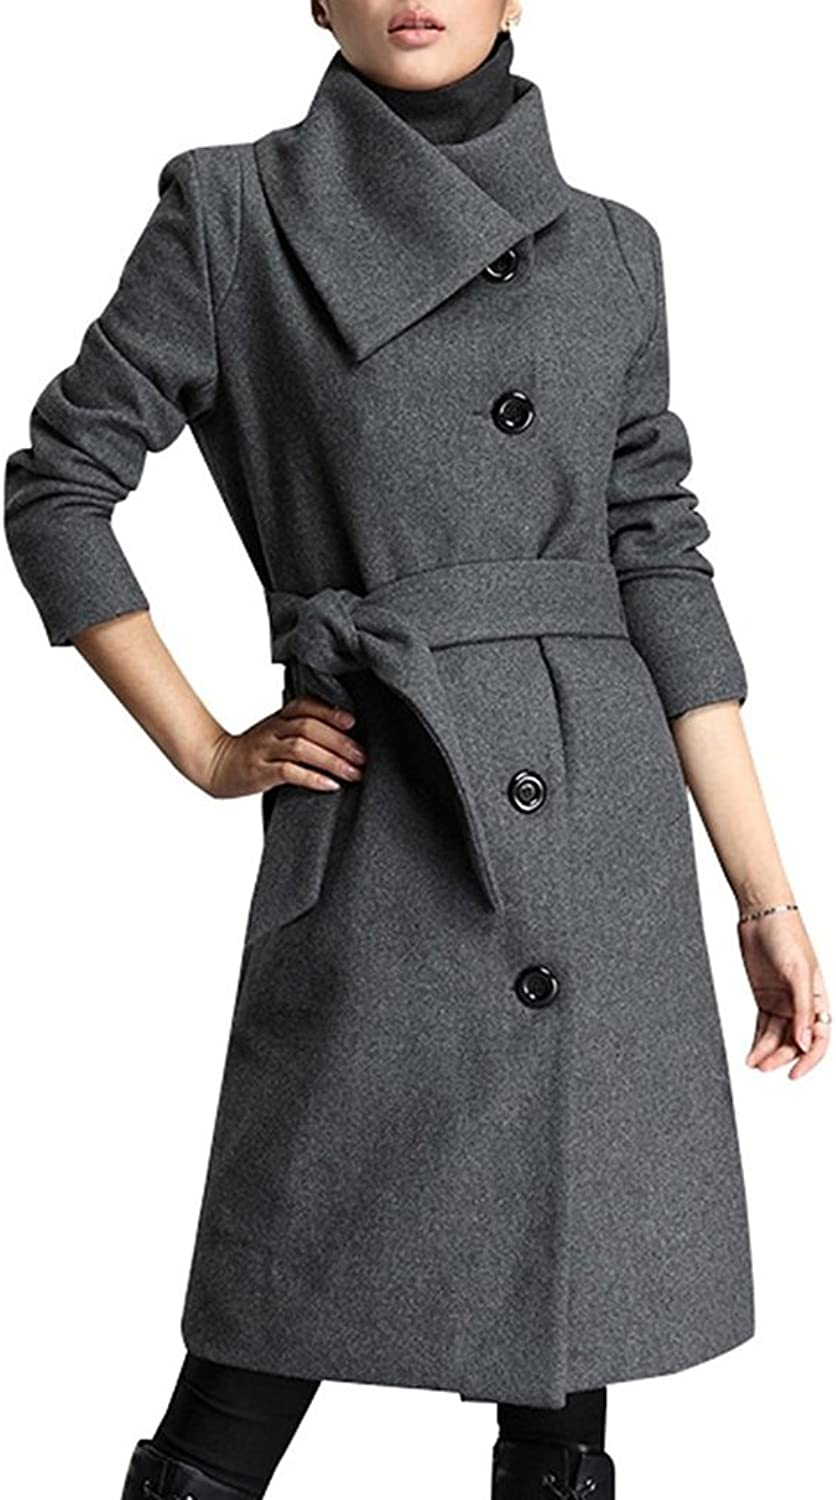 Fortuning's JDS Women's Single Breasted Long Wool Oblique Collar Trench Coat Jacket